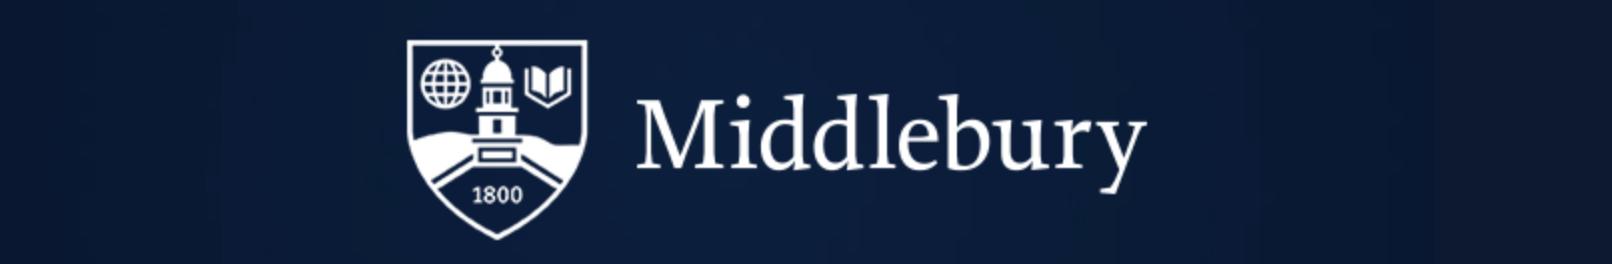 Middlebury College CTLR Scheduler